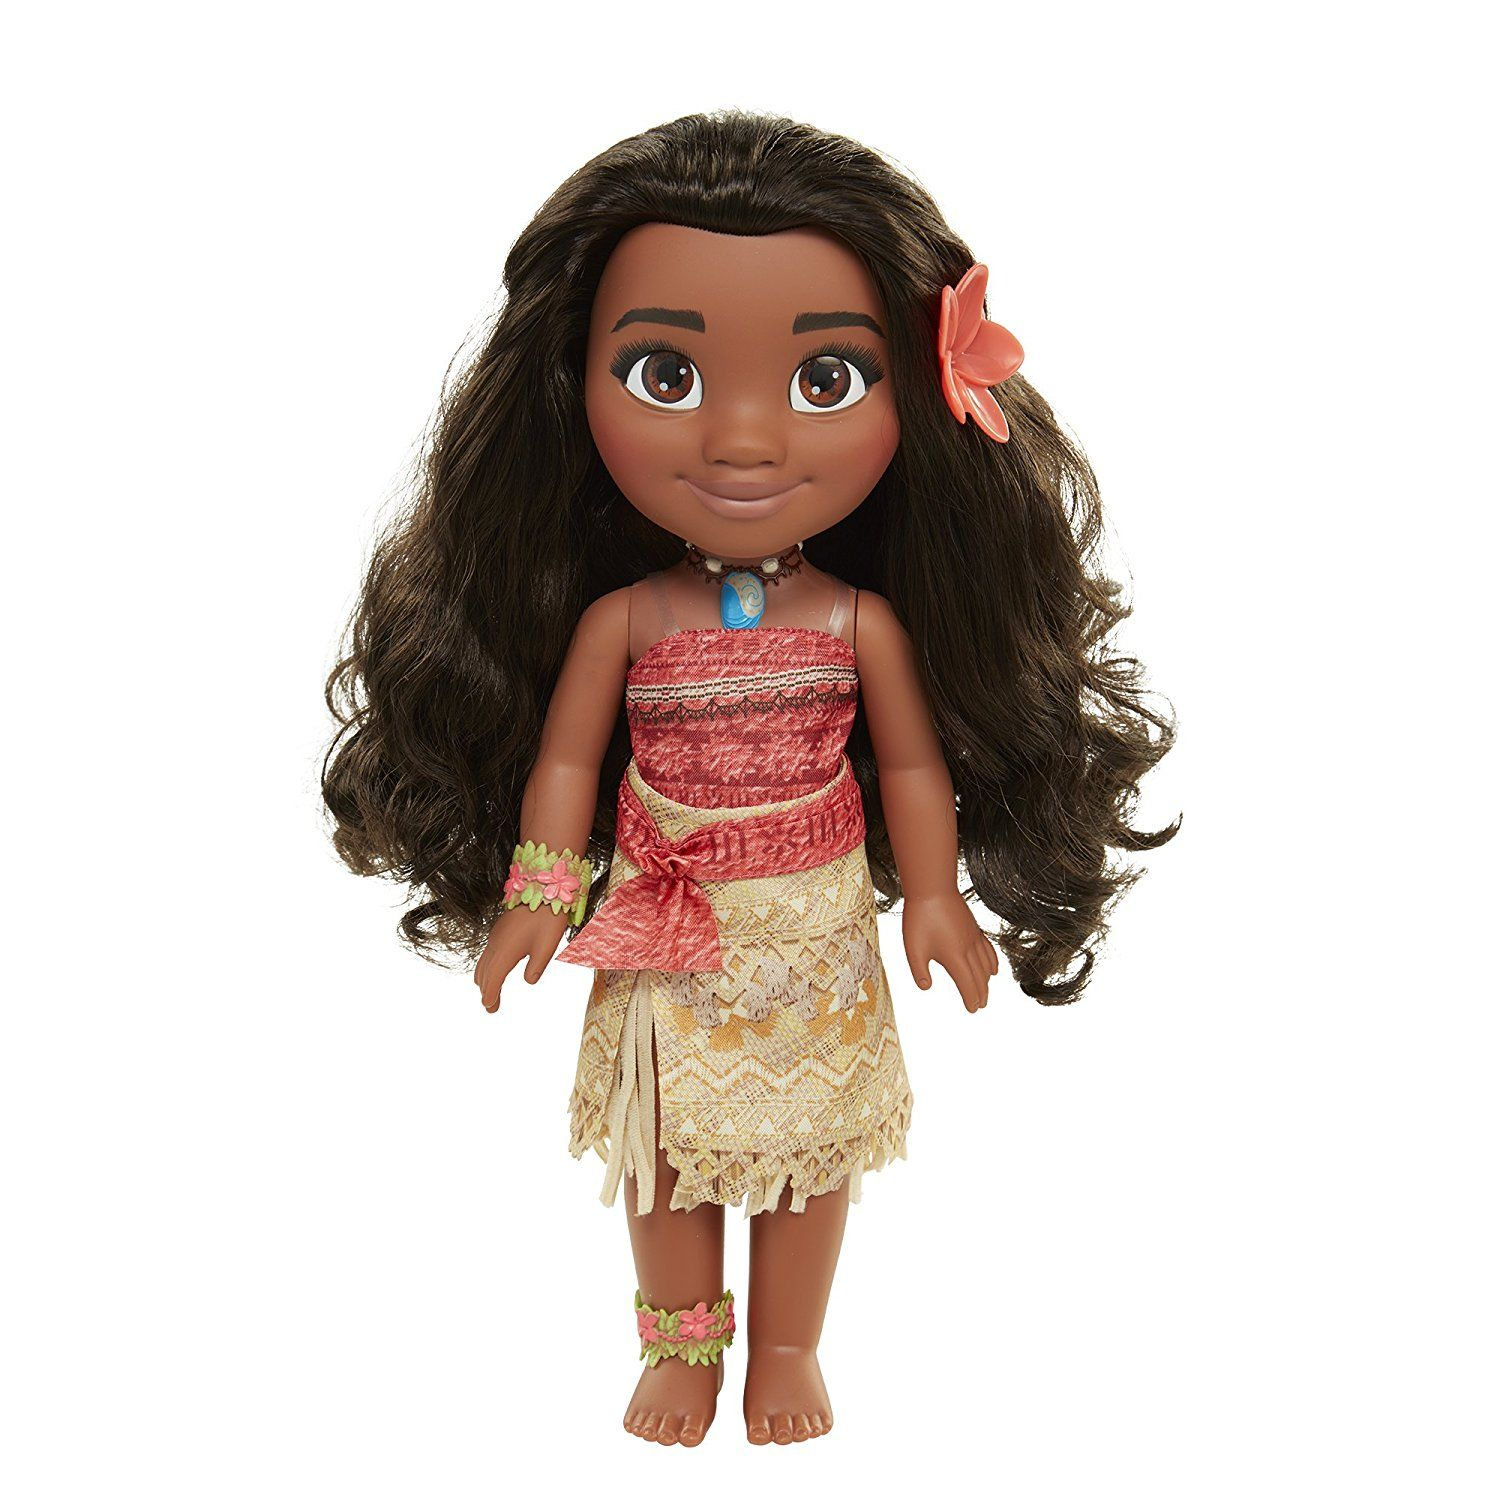 Beautifull Disney Moana Adventure Doll 14 Inches